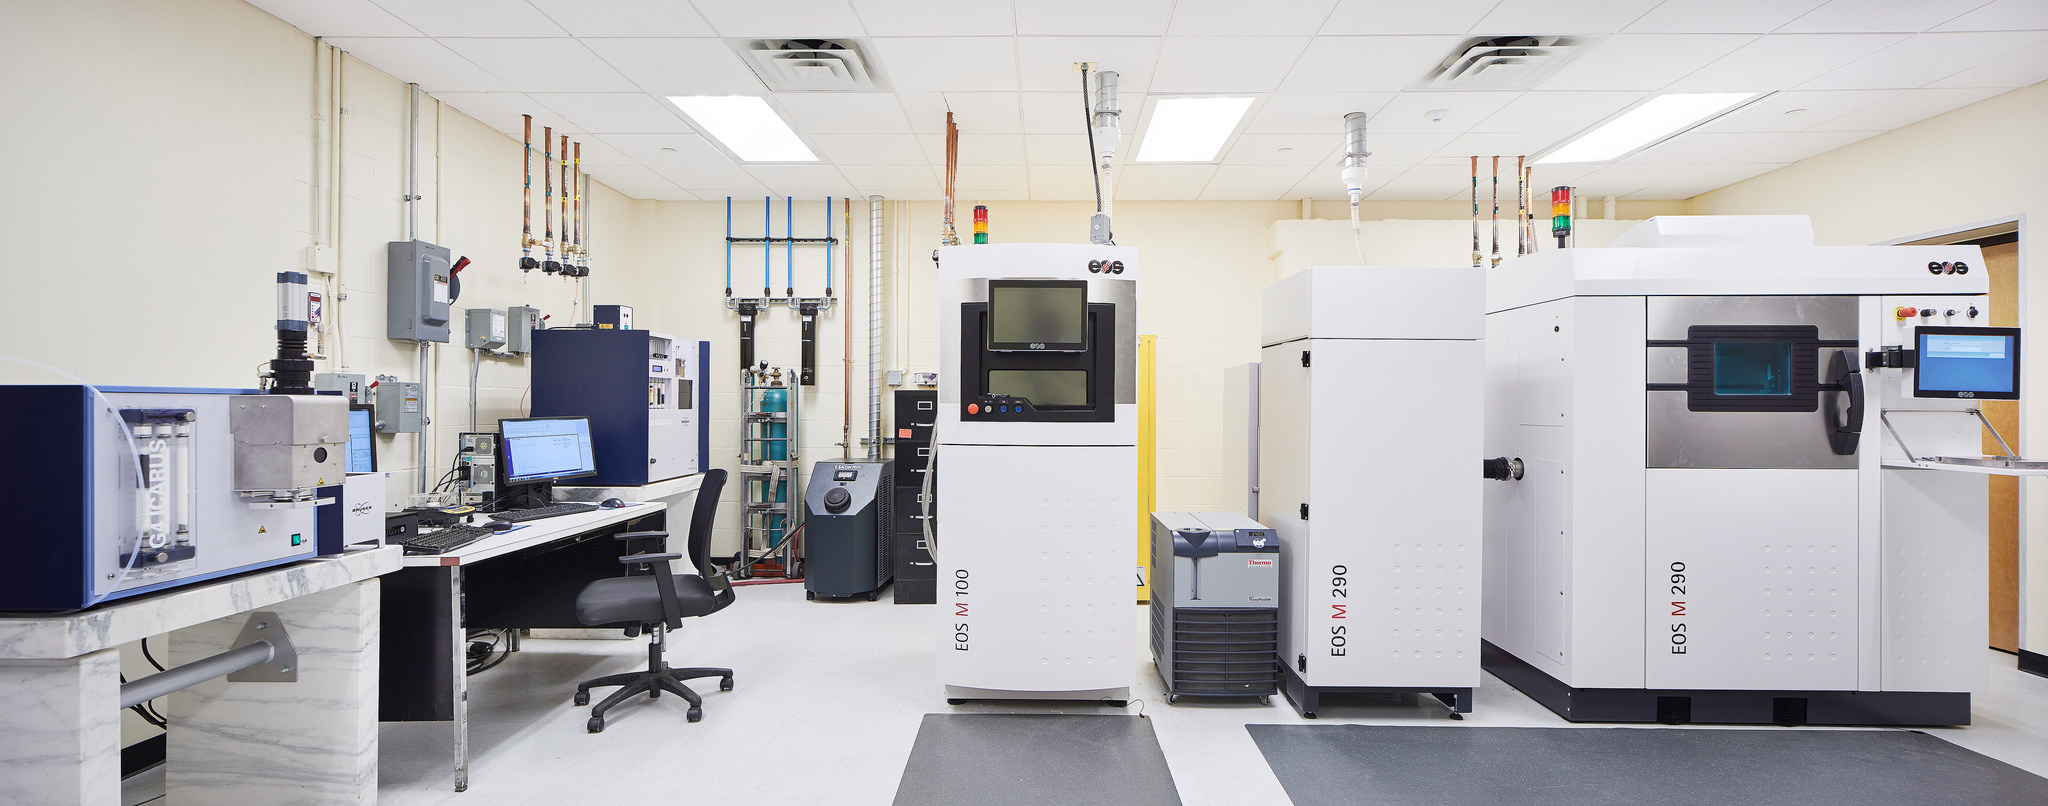 Metal Additive Manufacturing Laboratory room with technology equipment